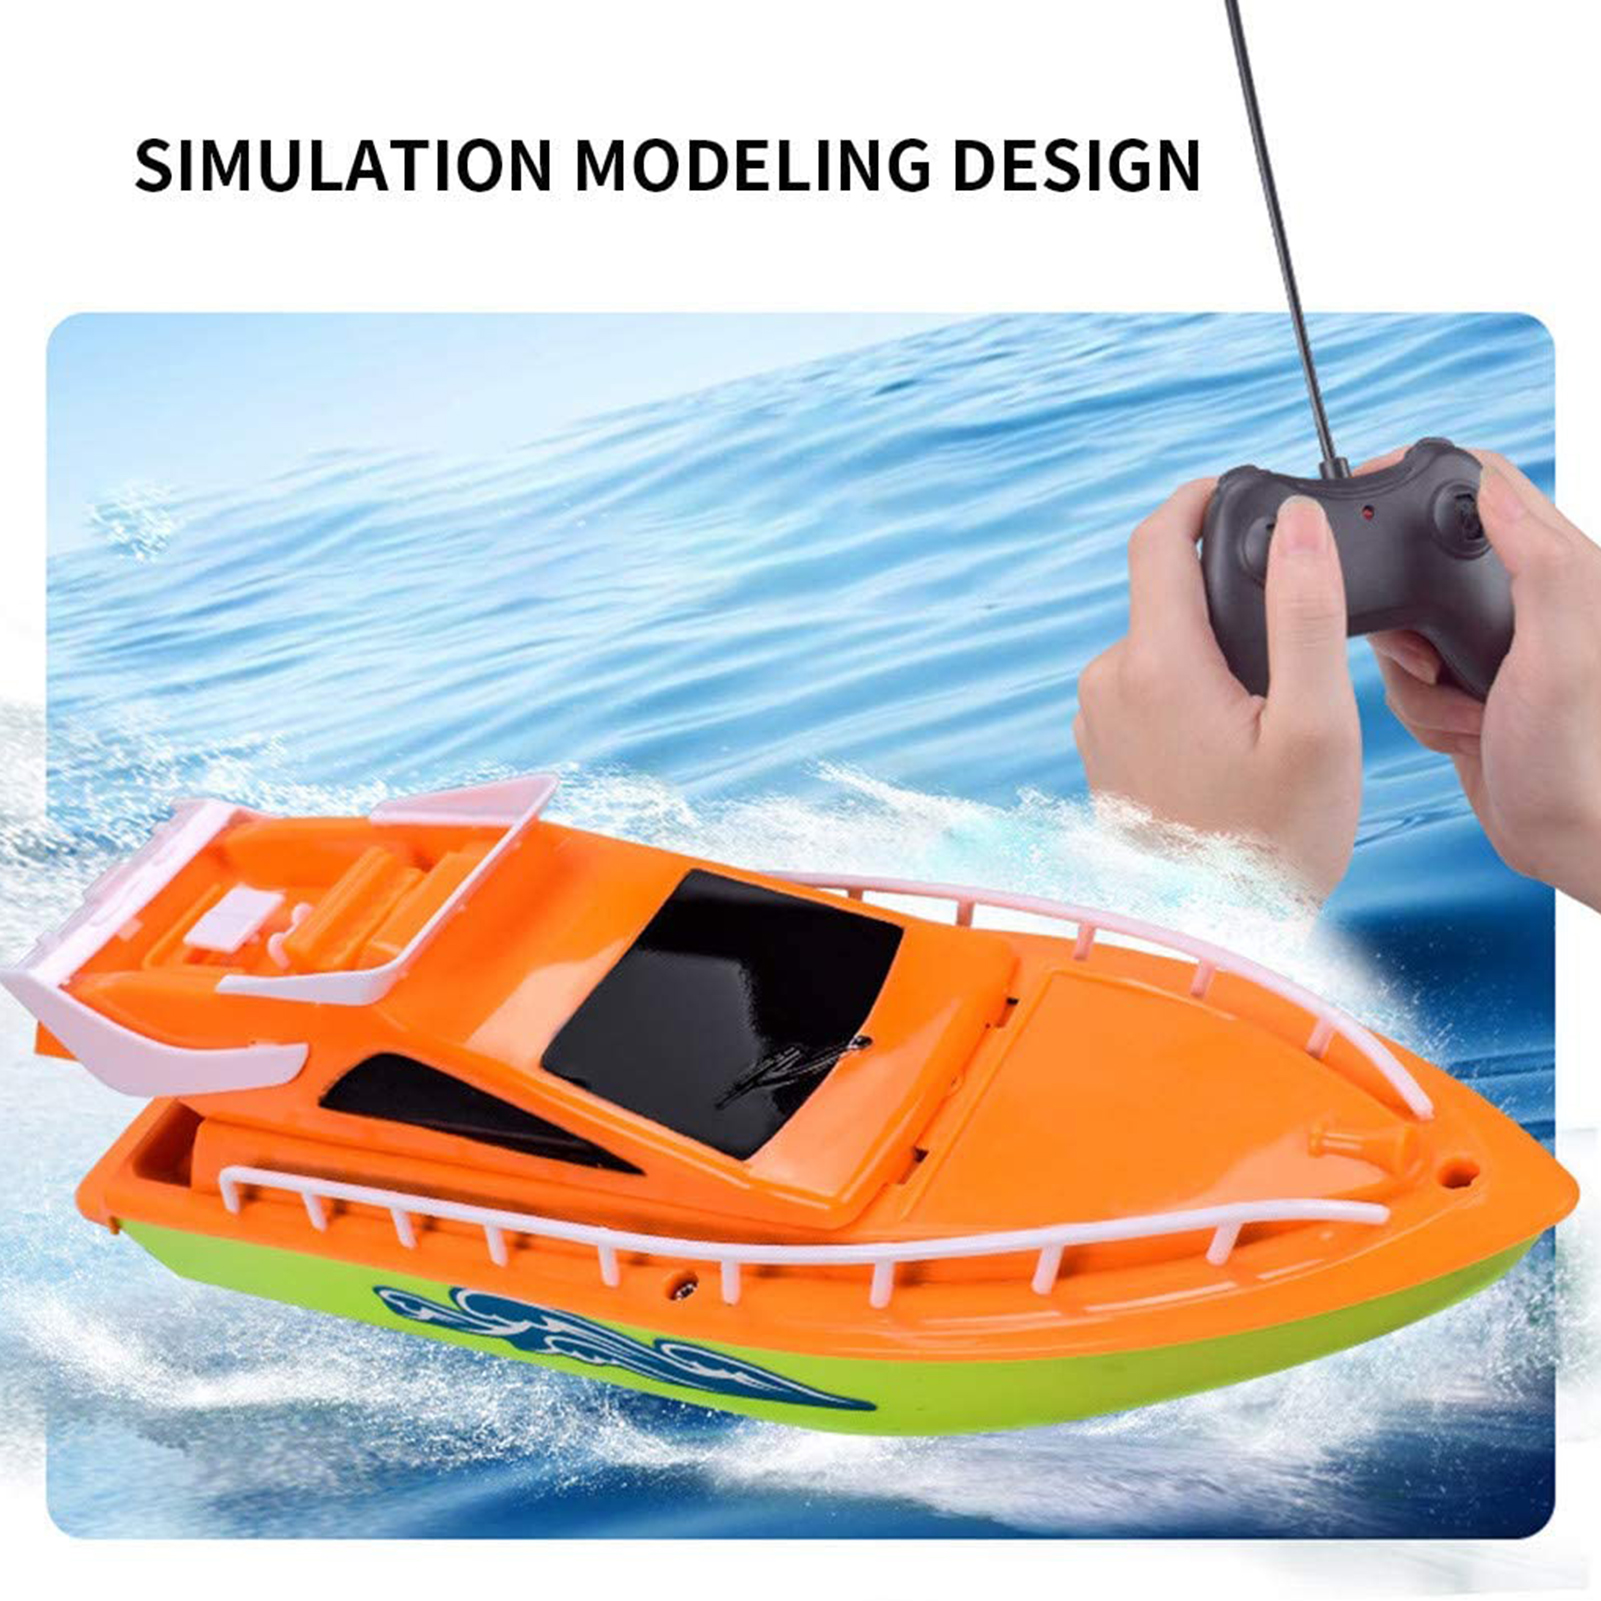 High Quality RC Boat High-speed Electric Children Remote Control Toy Simulation Model Toys Outdoor Racing Ship Adults Kids Gift